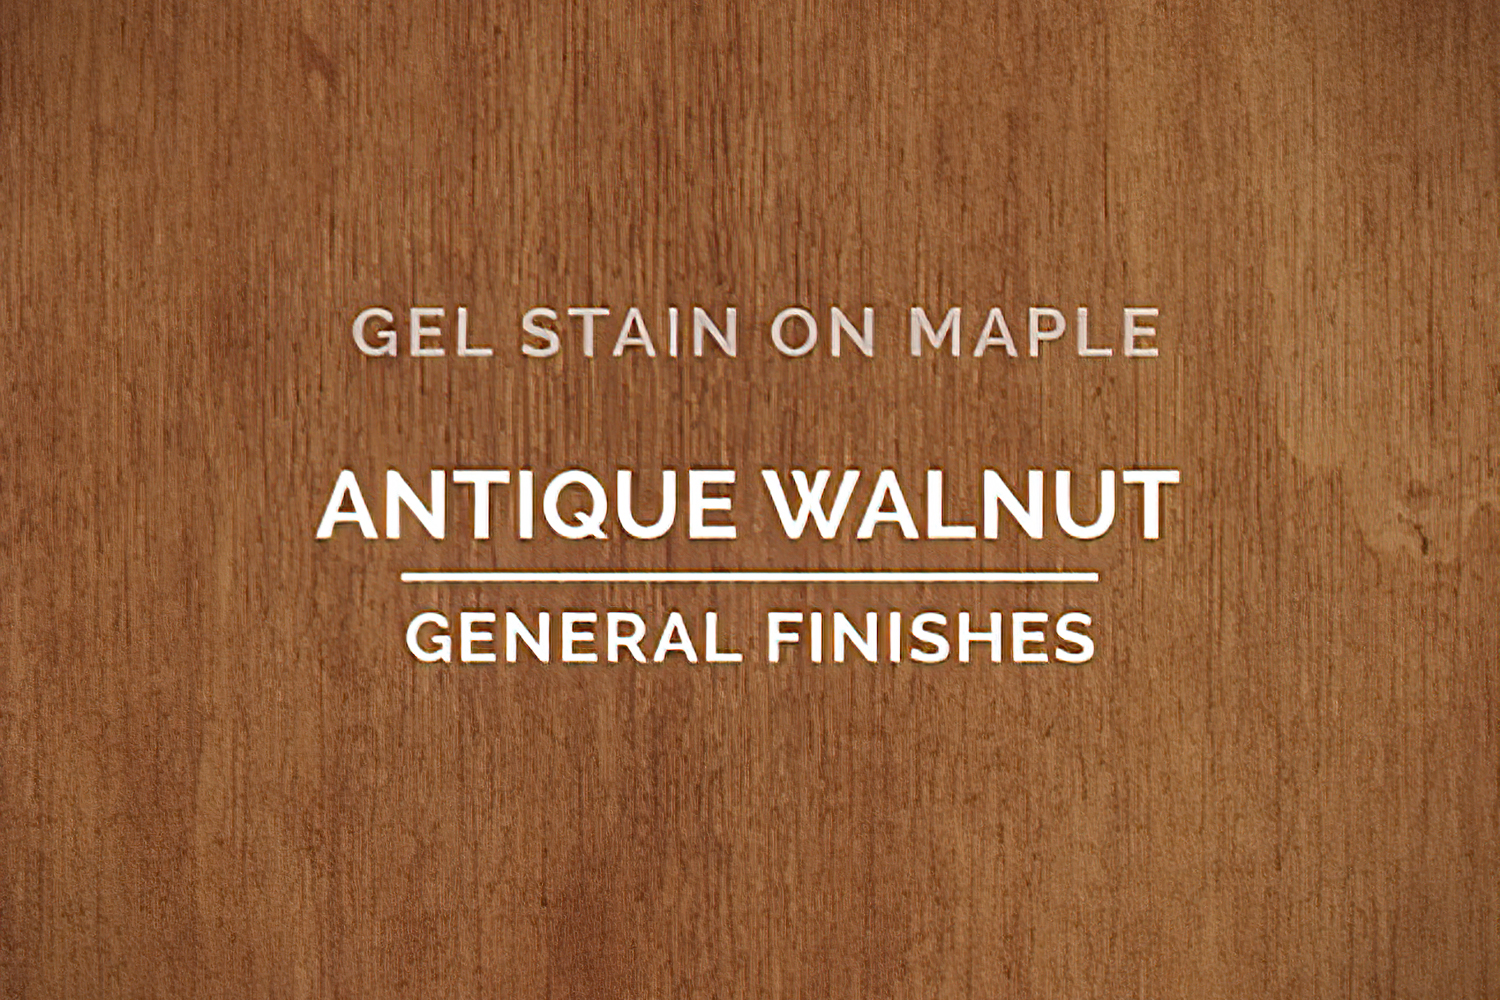 Color Chip Gel Stain Antique Walnut On Maple General Finishes Copy